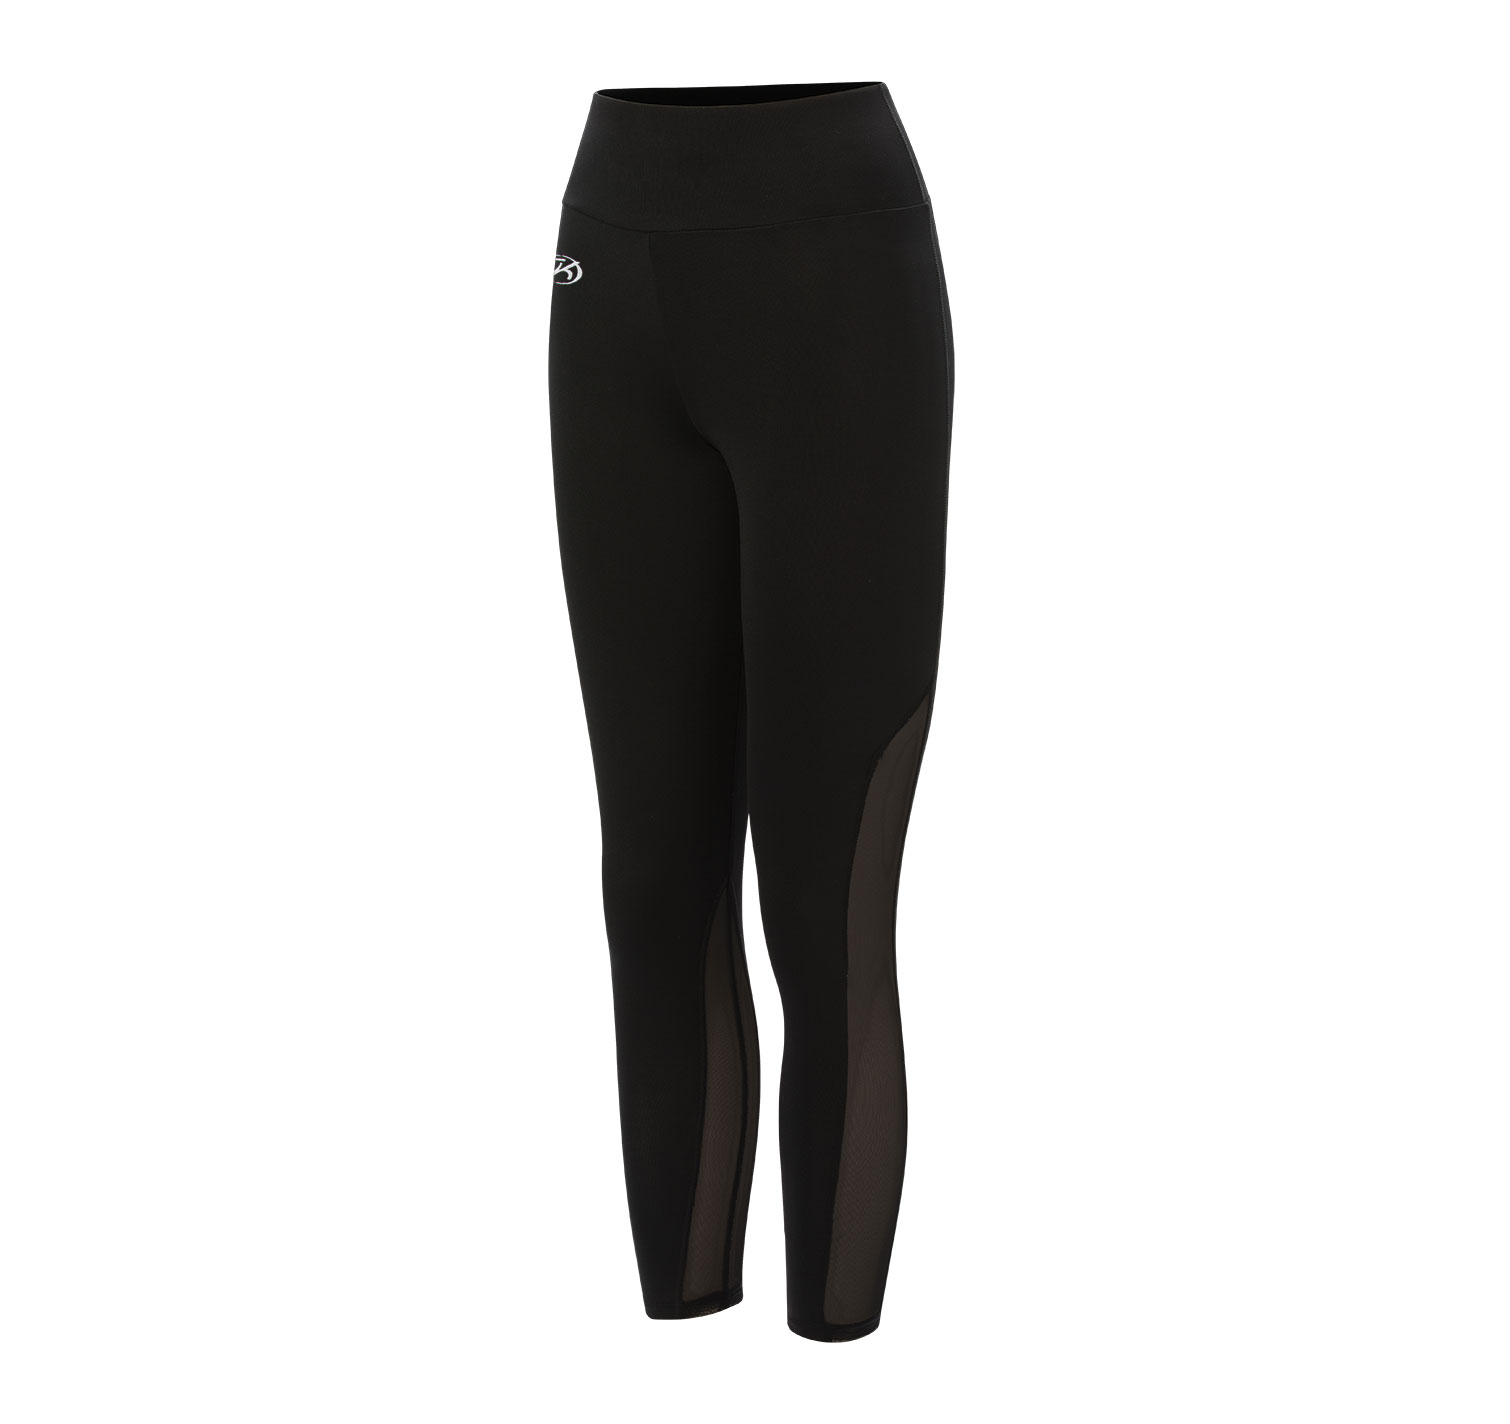 GK All Stat High Waisted Tights